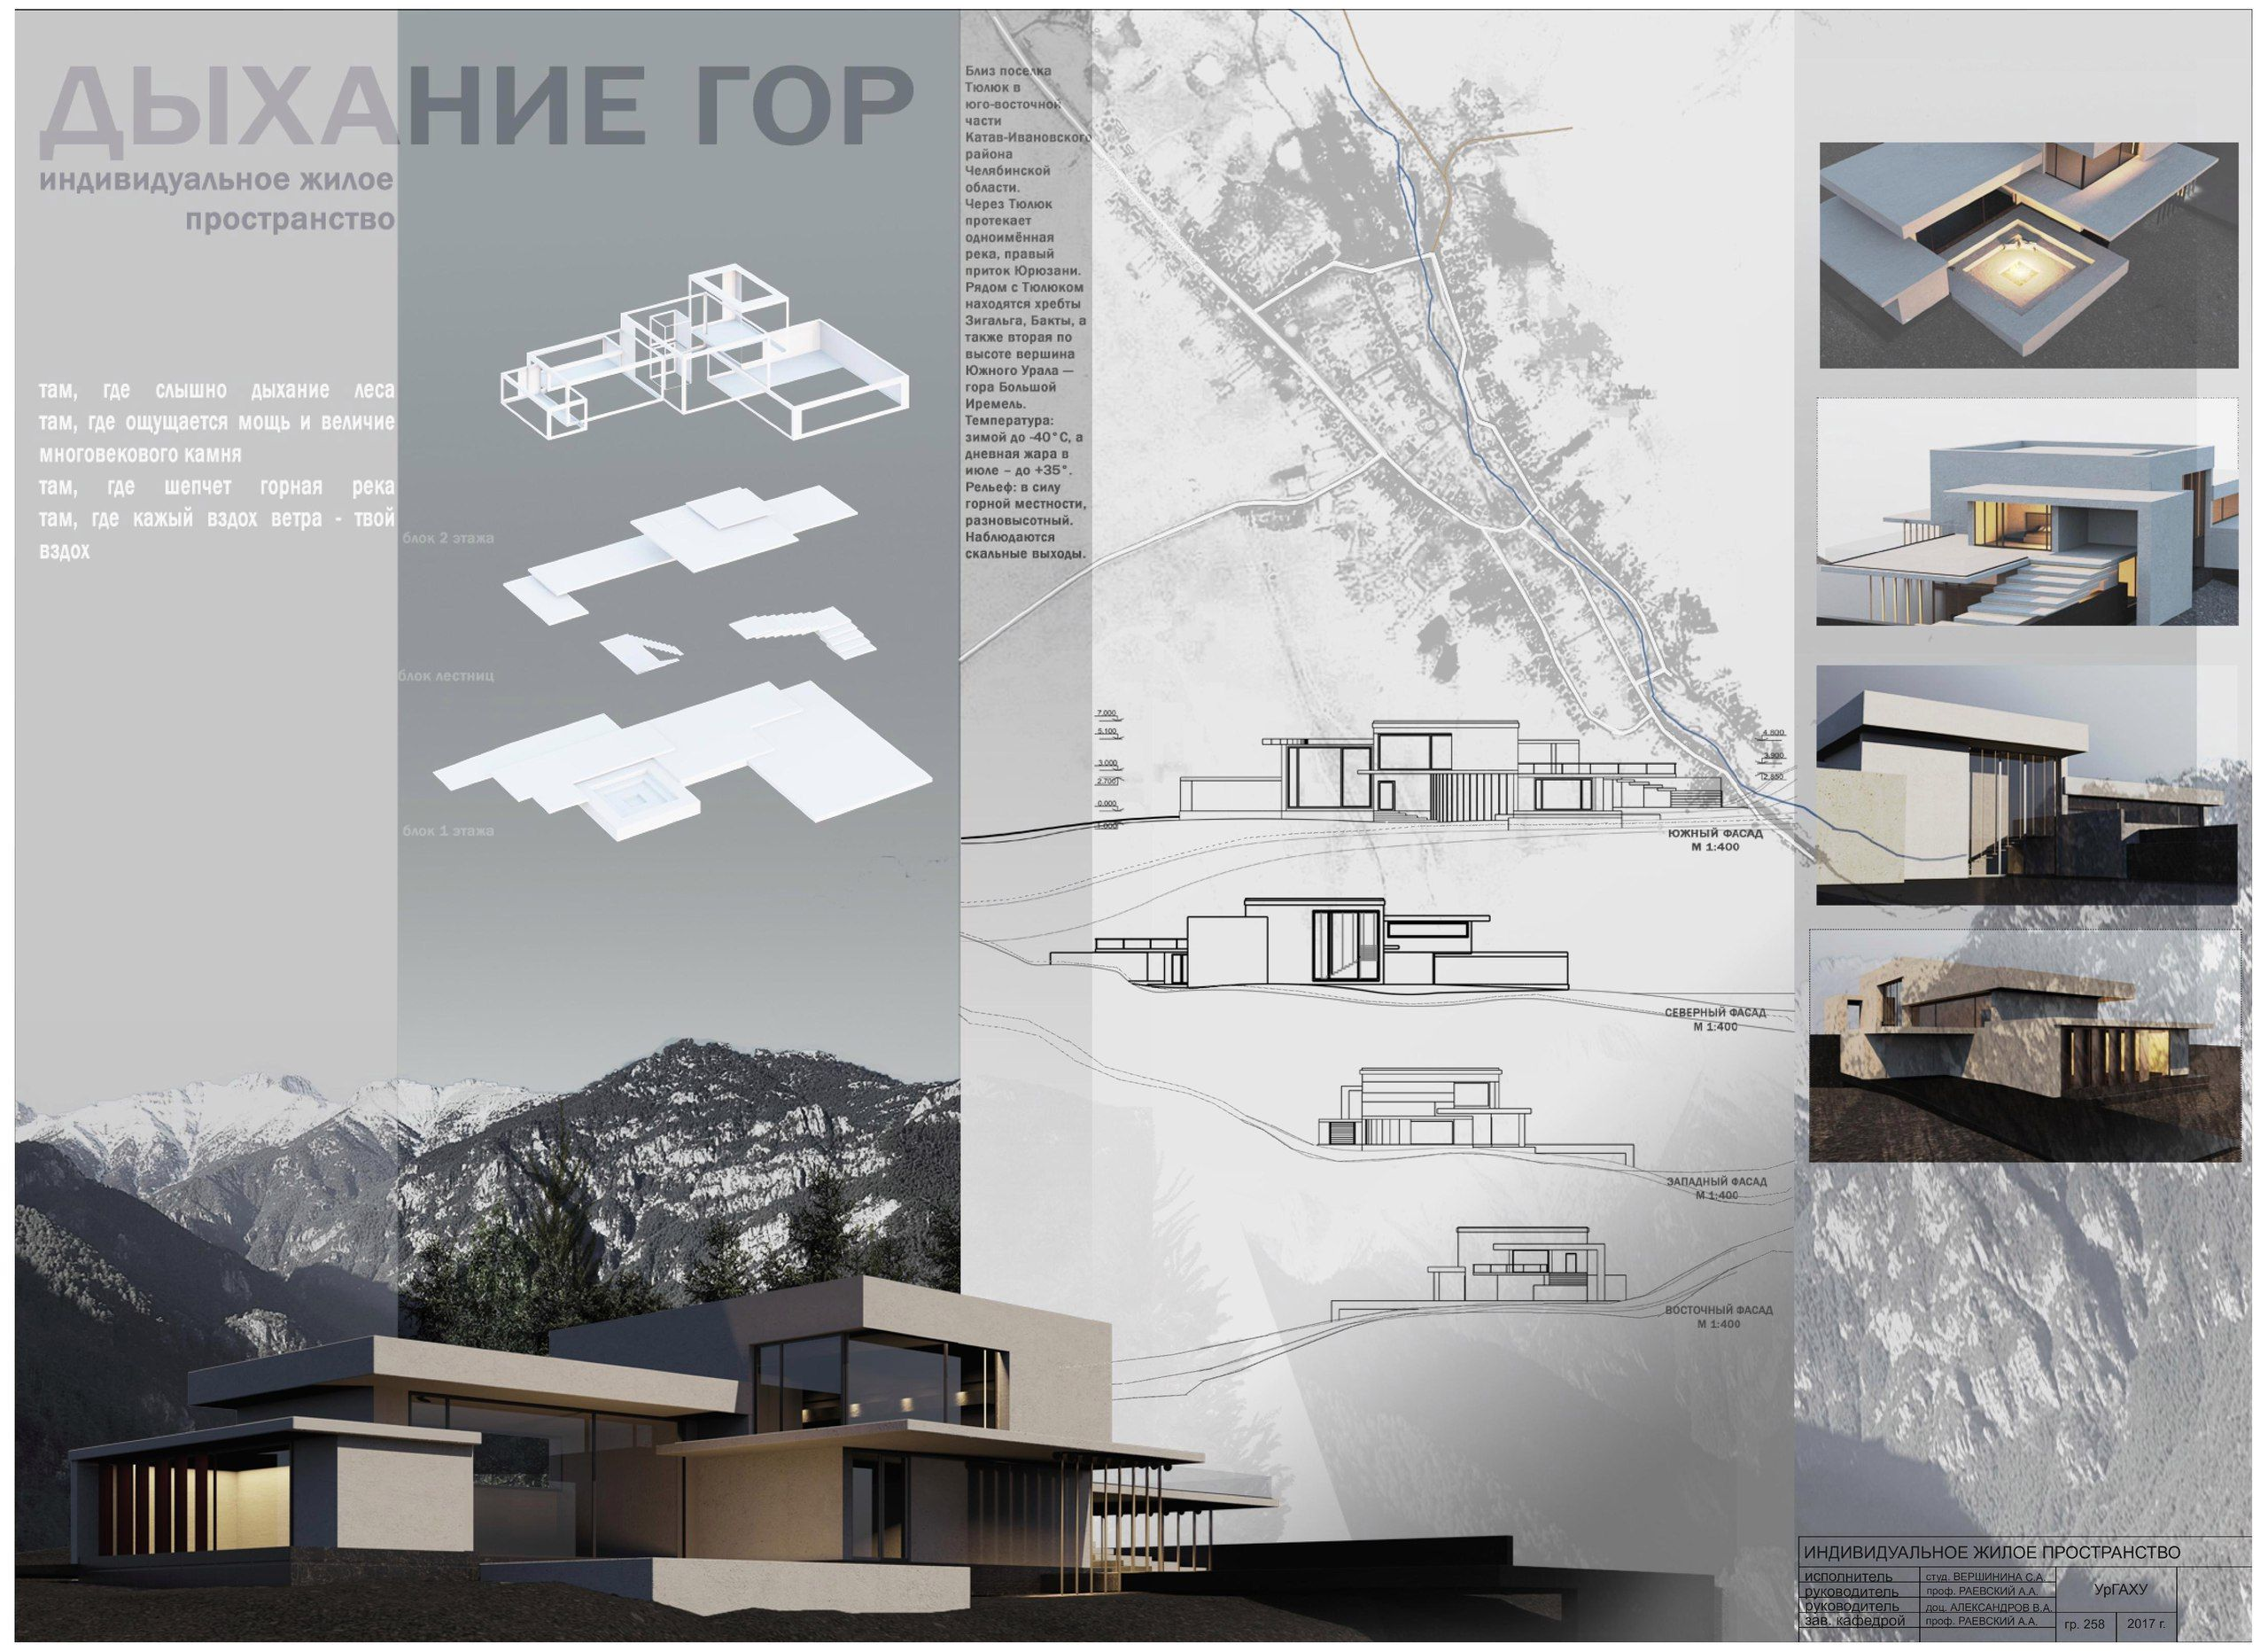 10 Spectacular Home Design Architectural Drawing Ideas In 2020 Layout Architecture Presentation Board Design Architecture Presentation